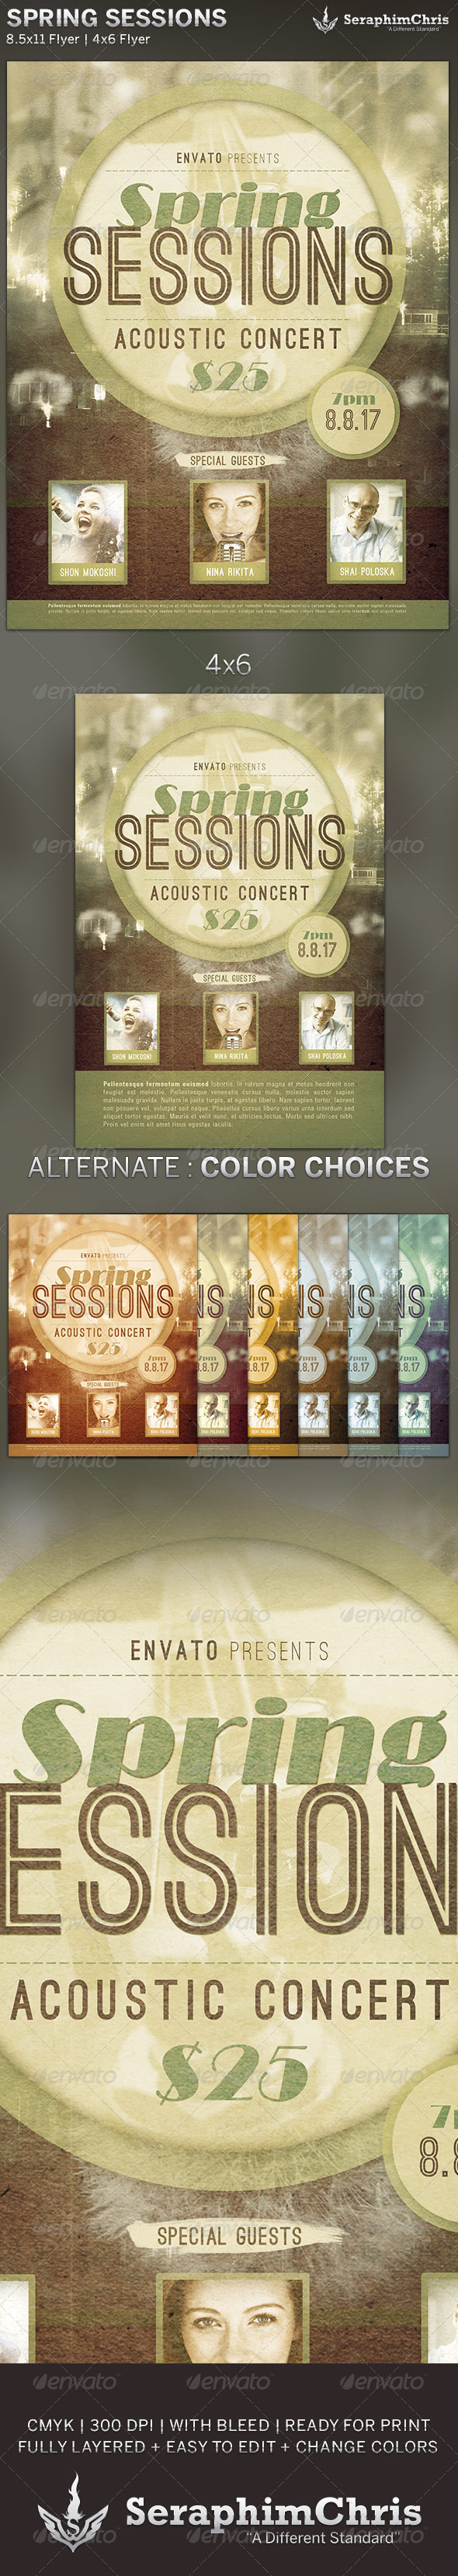 Spring Sessions: Concert Flyer Template - Concerts Events